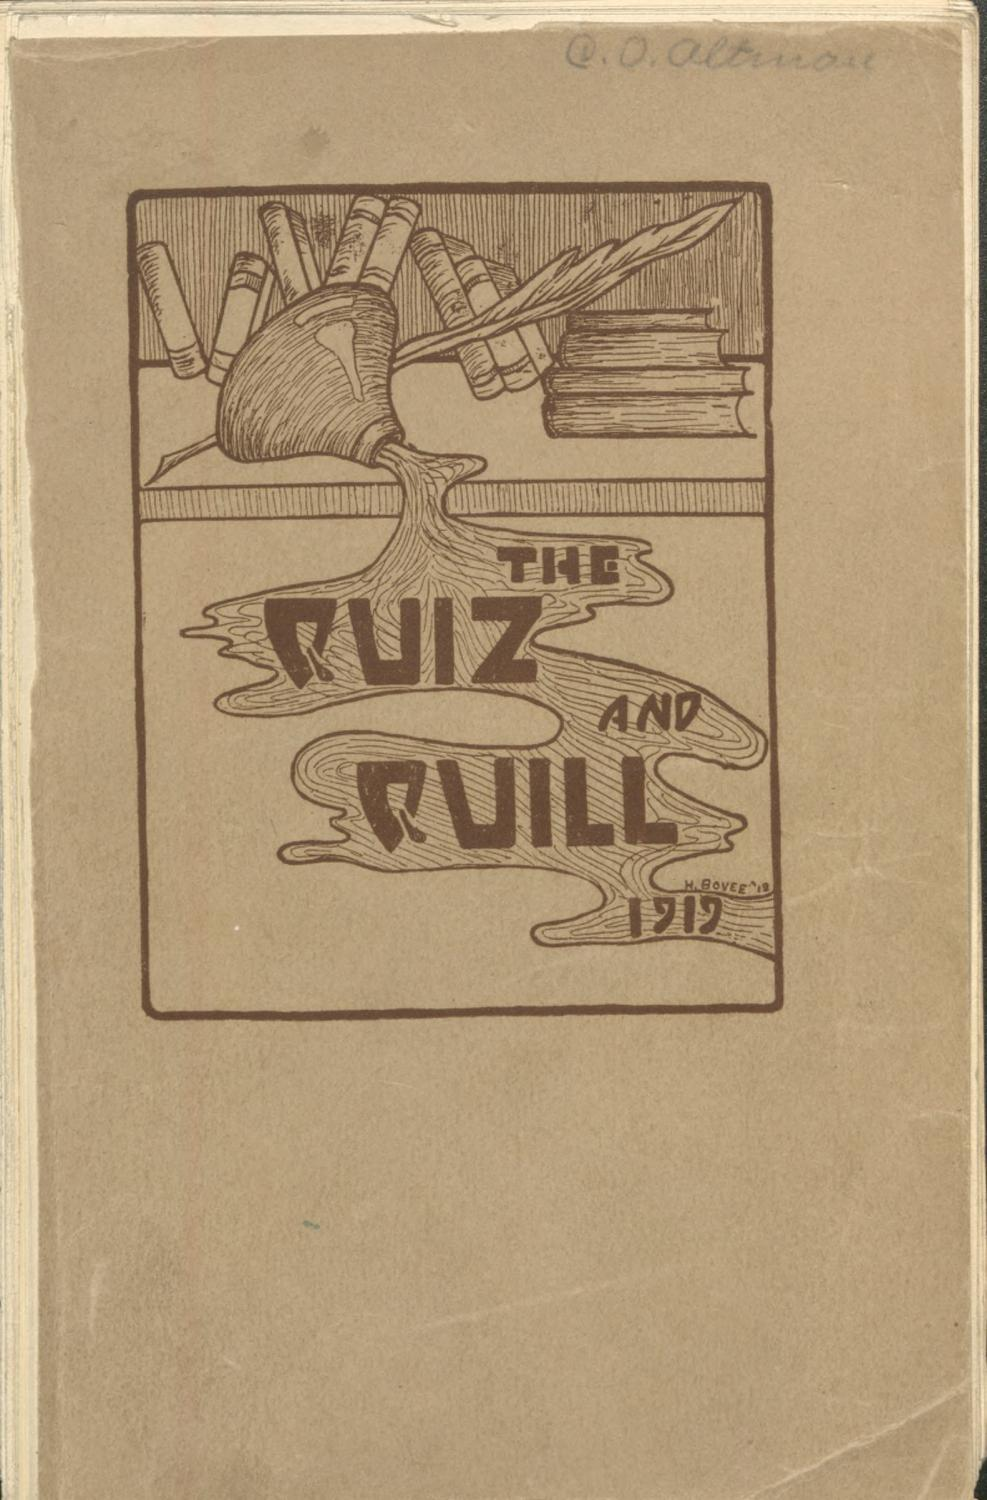 1919 Quiz And Quill By Otterbein University Issuu